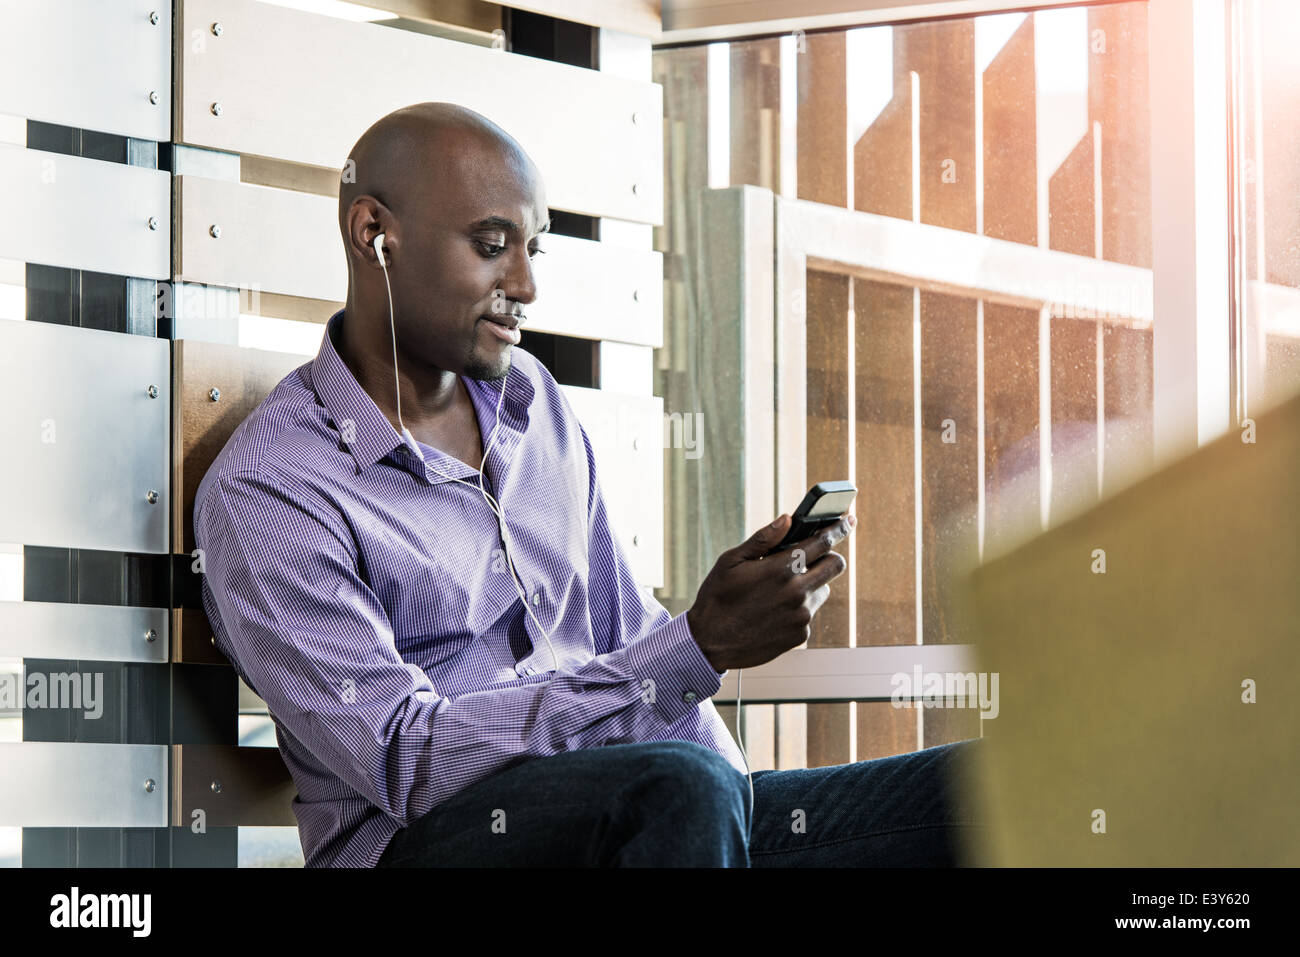 Male office worker listening to smartphone earphones in office - Stock Image